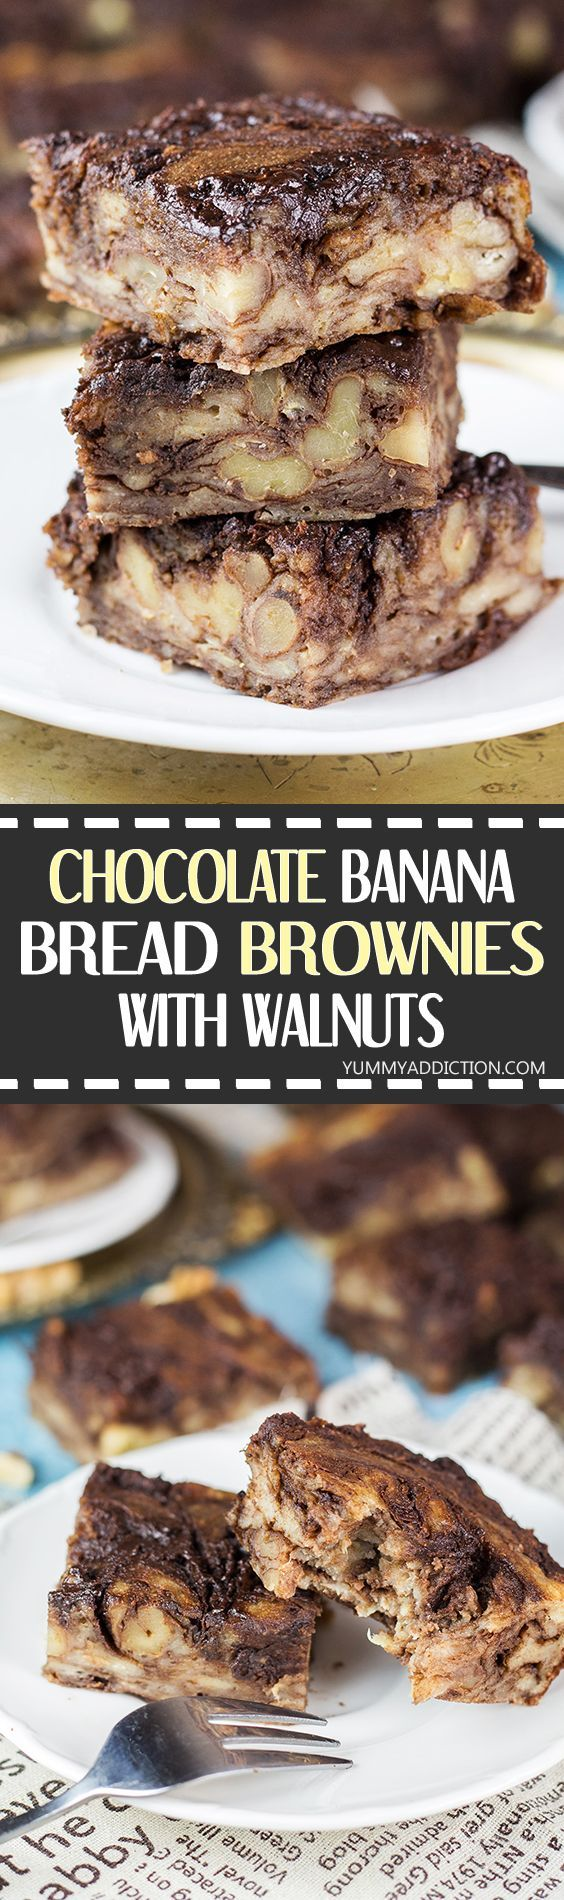 These Chocolate Banana Bread Brownies also feature walnuts and are comforting, dense, and super moist! They are guaranteed to make any day better! | yummyaddiction.com